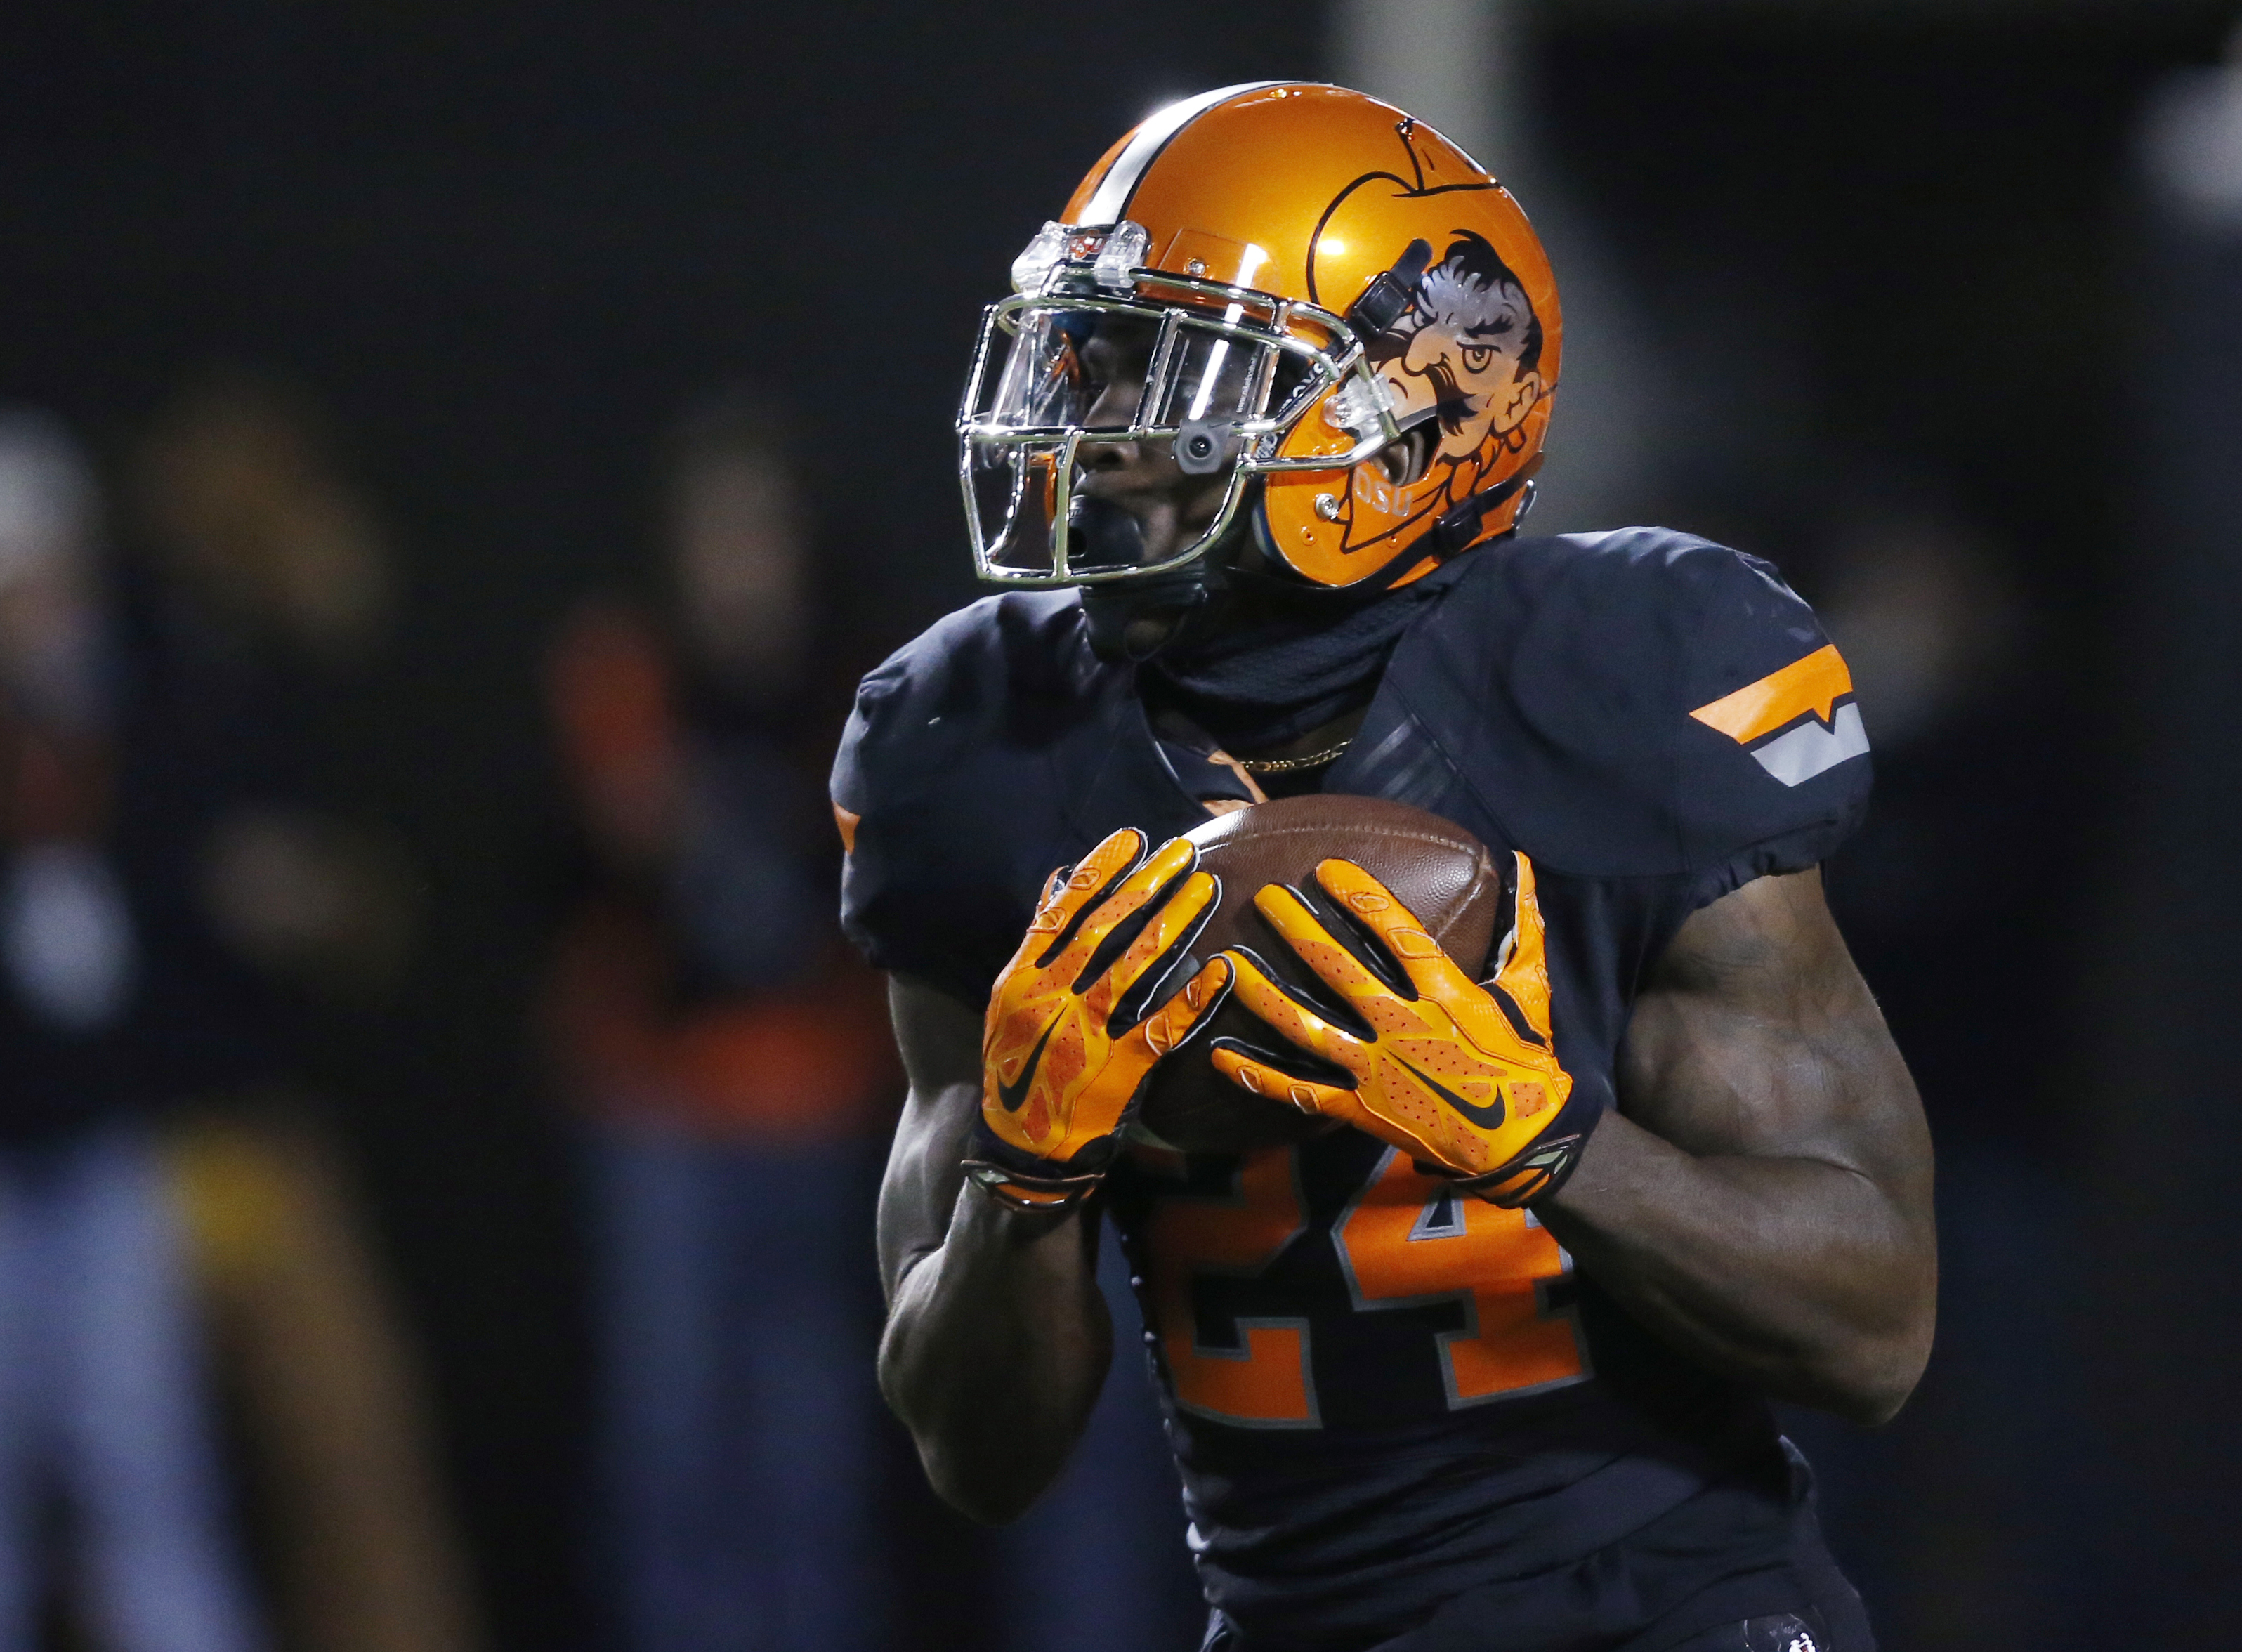 Tyreek Hill Former Oklahoma State RB enrolls at West Alabama